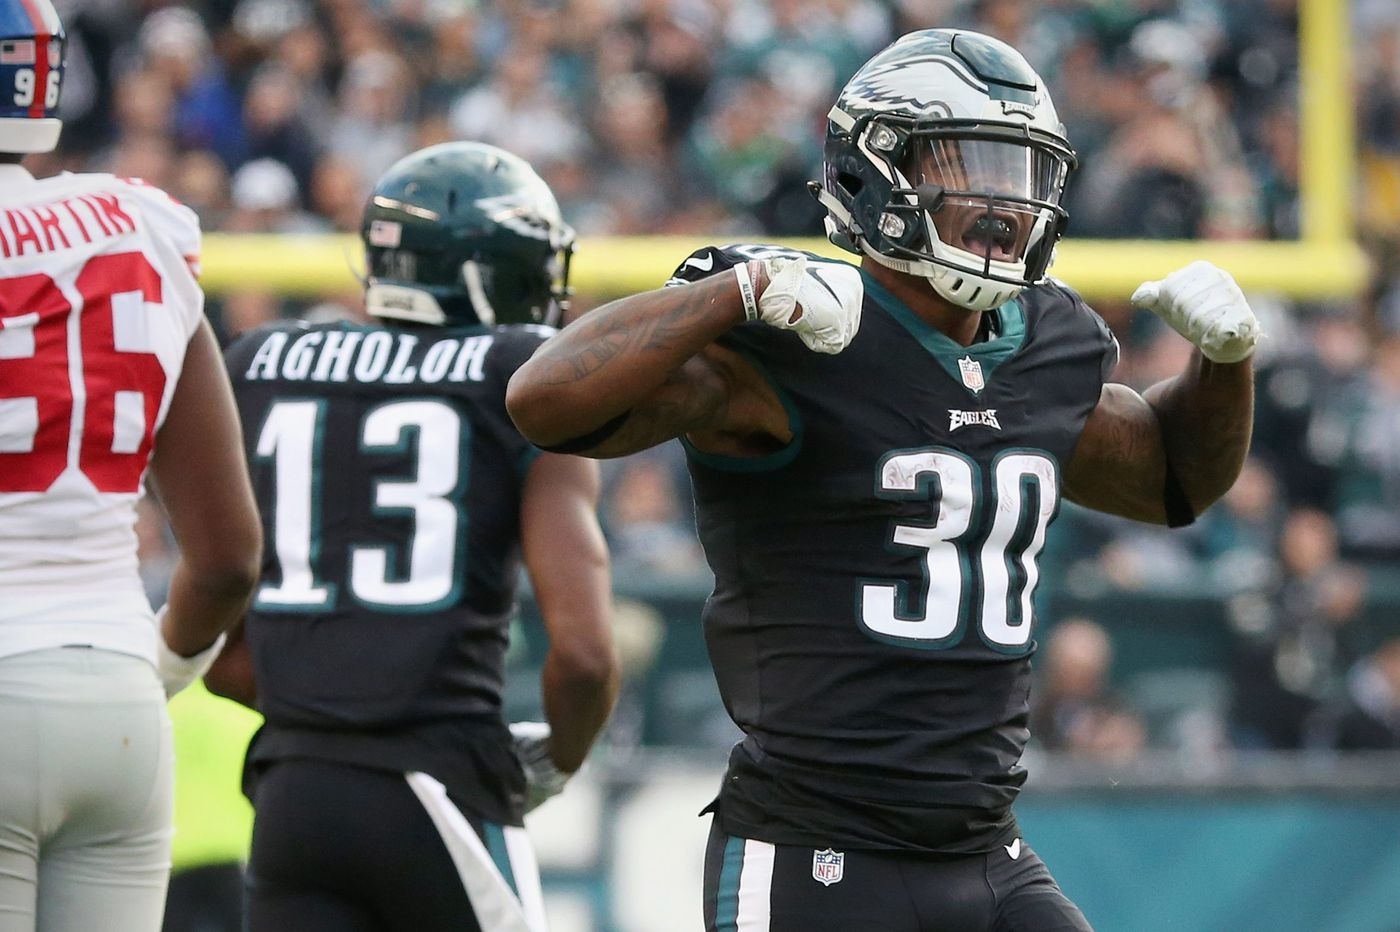 Eagles chat replay: Zach Berman on injuries, who's returning next year and more